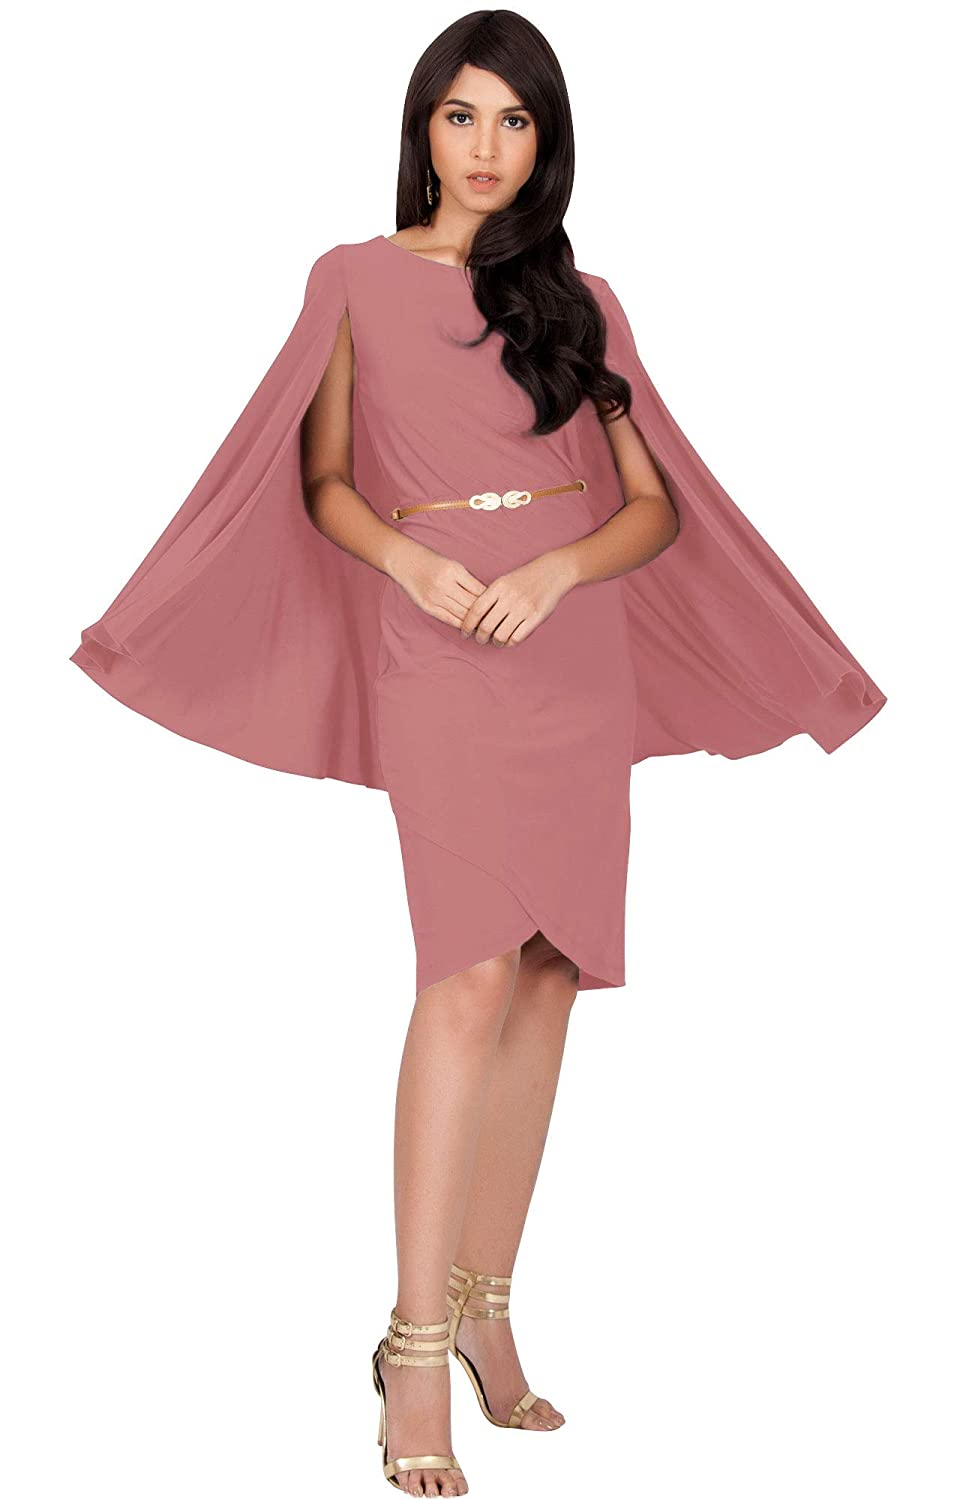 a2c49528268fc KOH KOH Womens Cape Long Sleeve Round Neck Cocktail with Leather Belt Mini  Dress